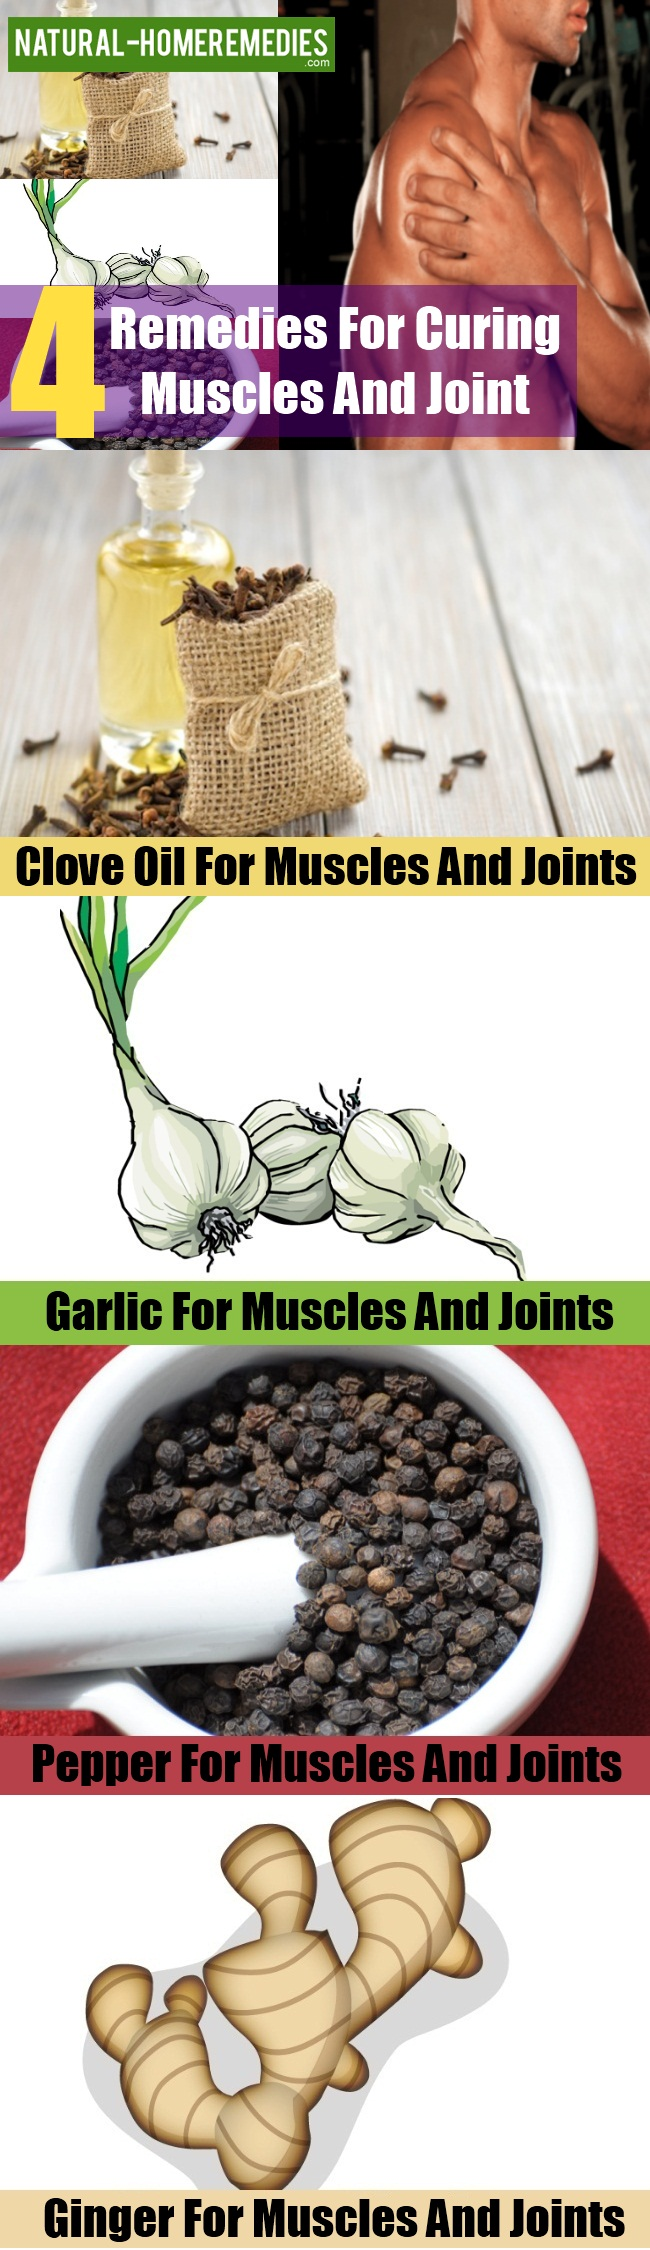 Remedies For Curing Muscles And Joint